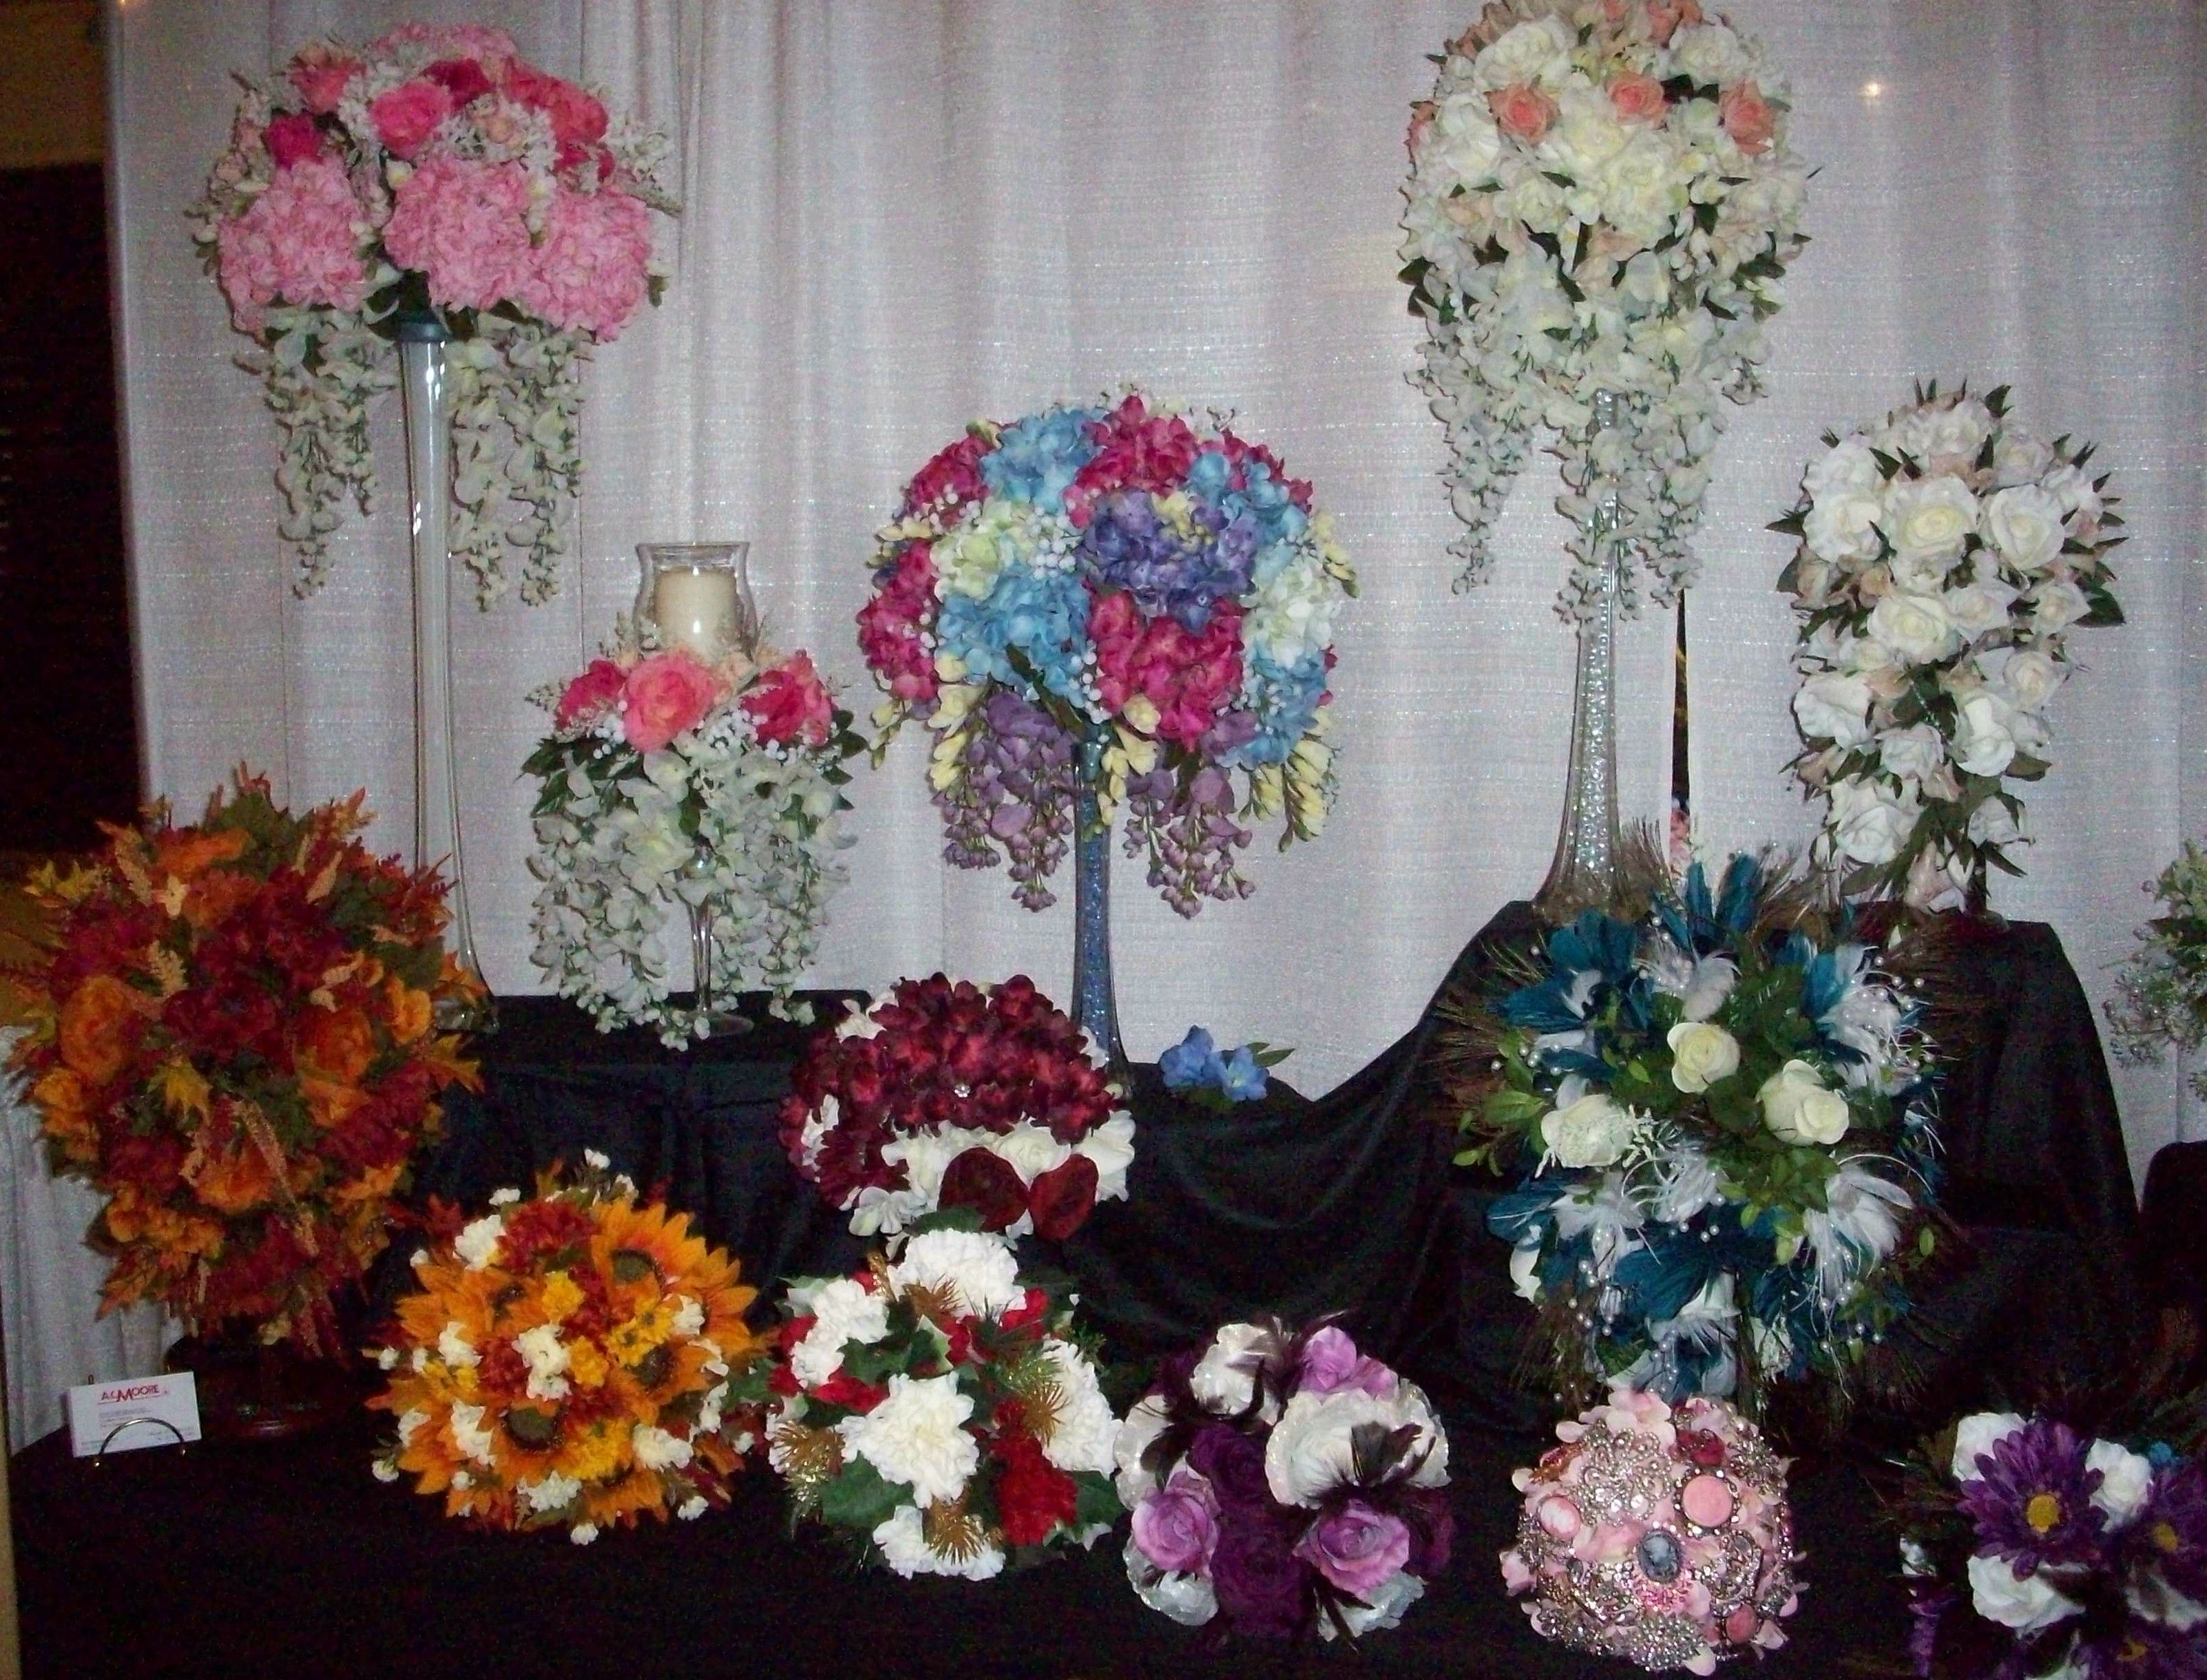 Wedding Centerpieces Bouquets Designed By Karen B AC Moore Erie PA